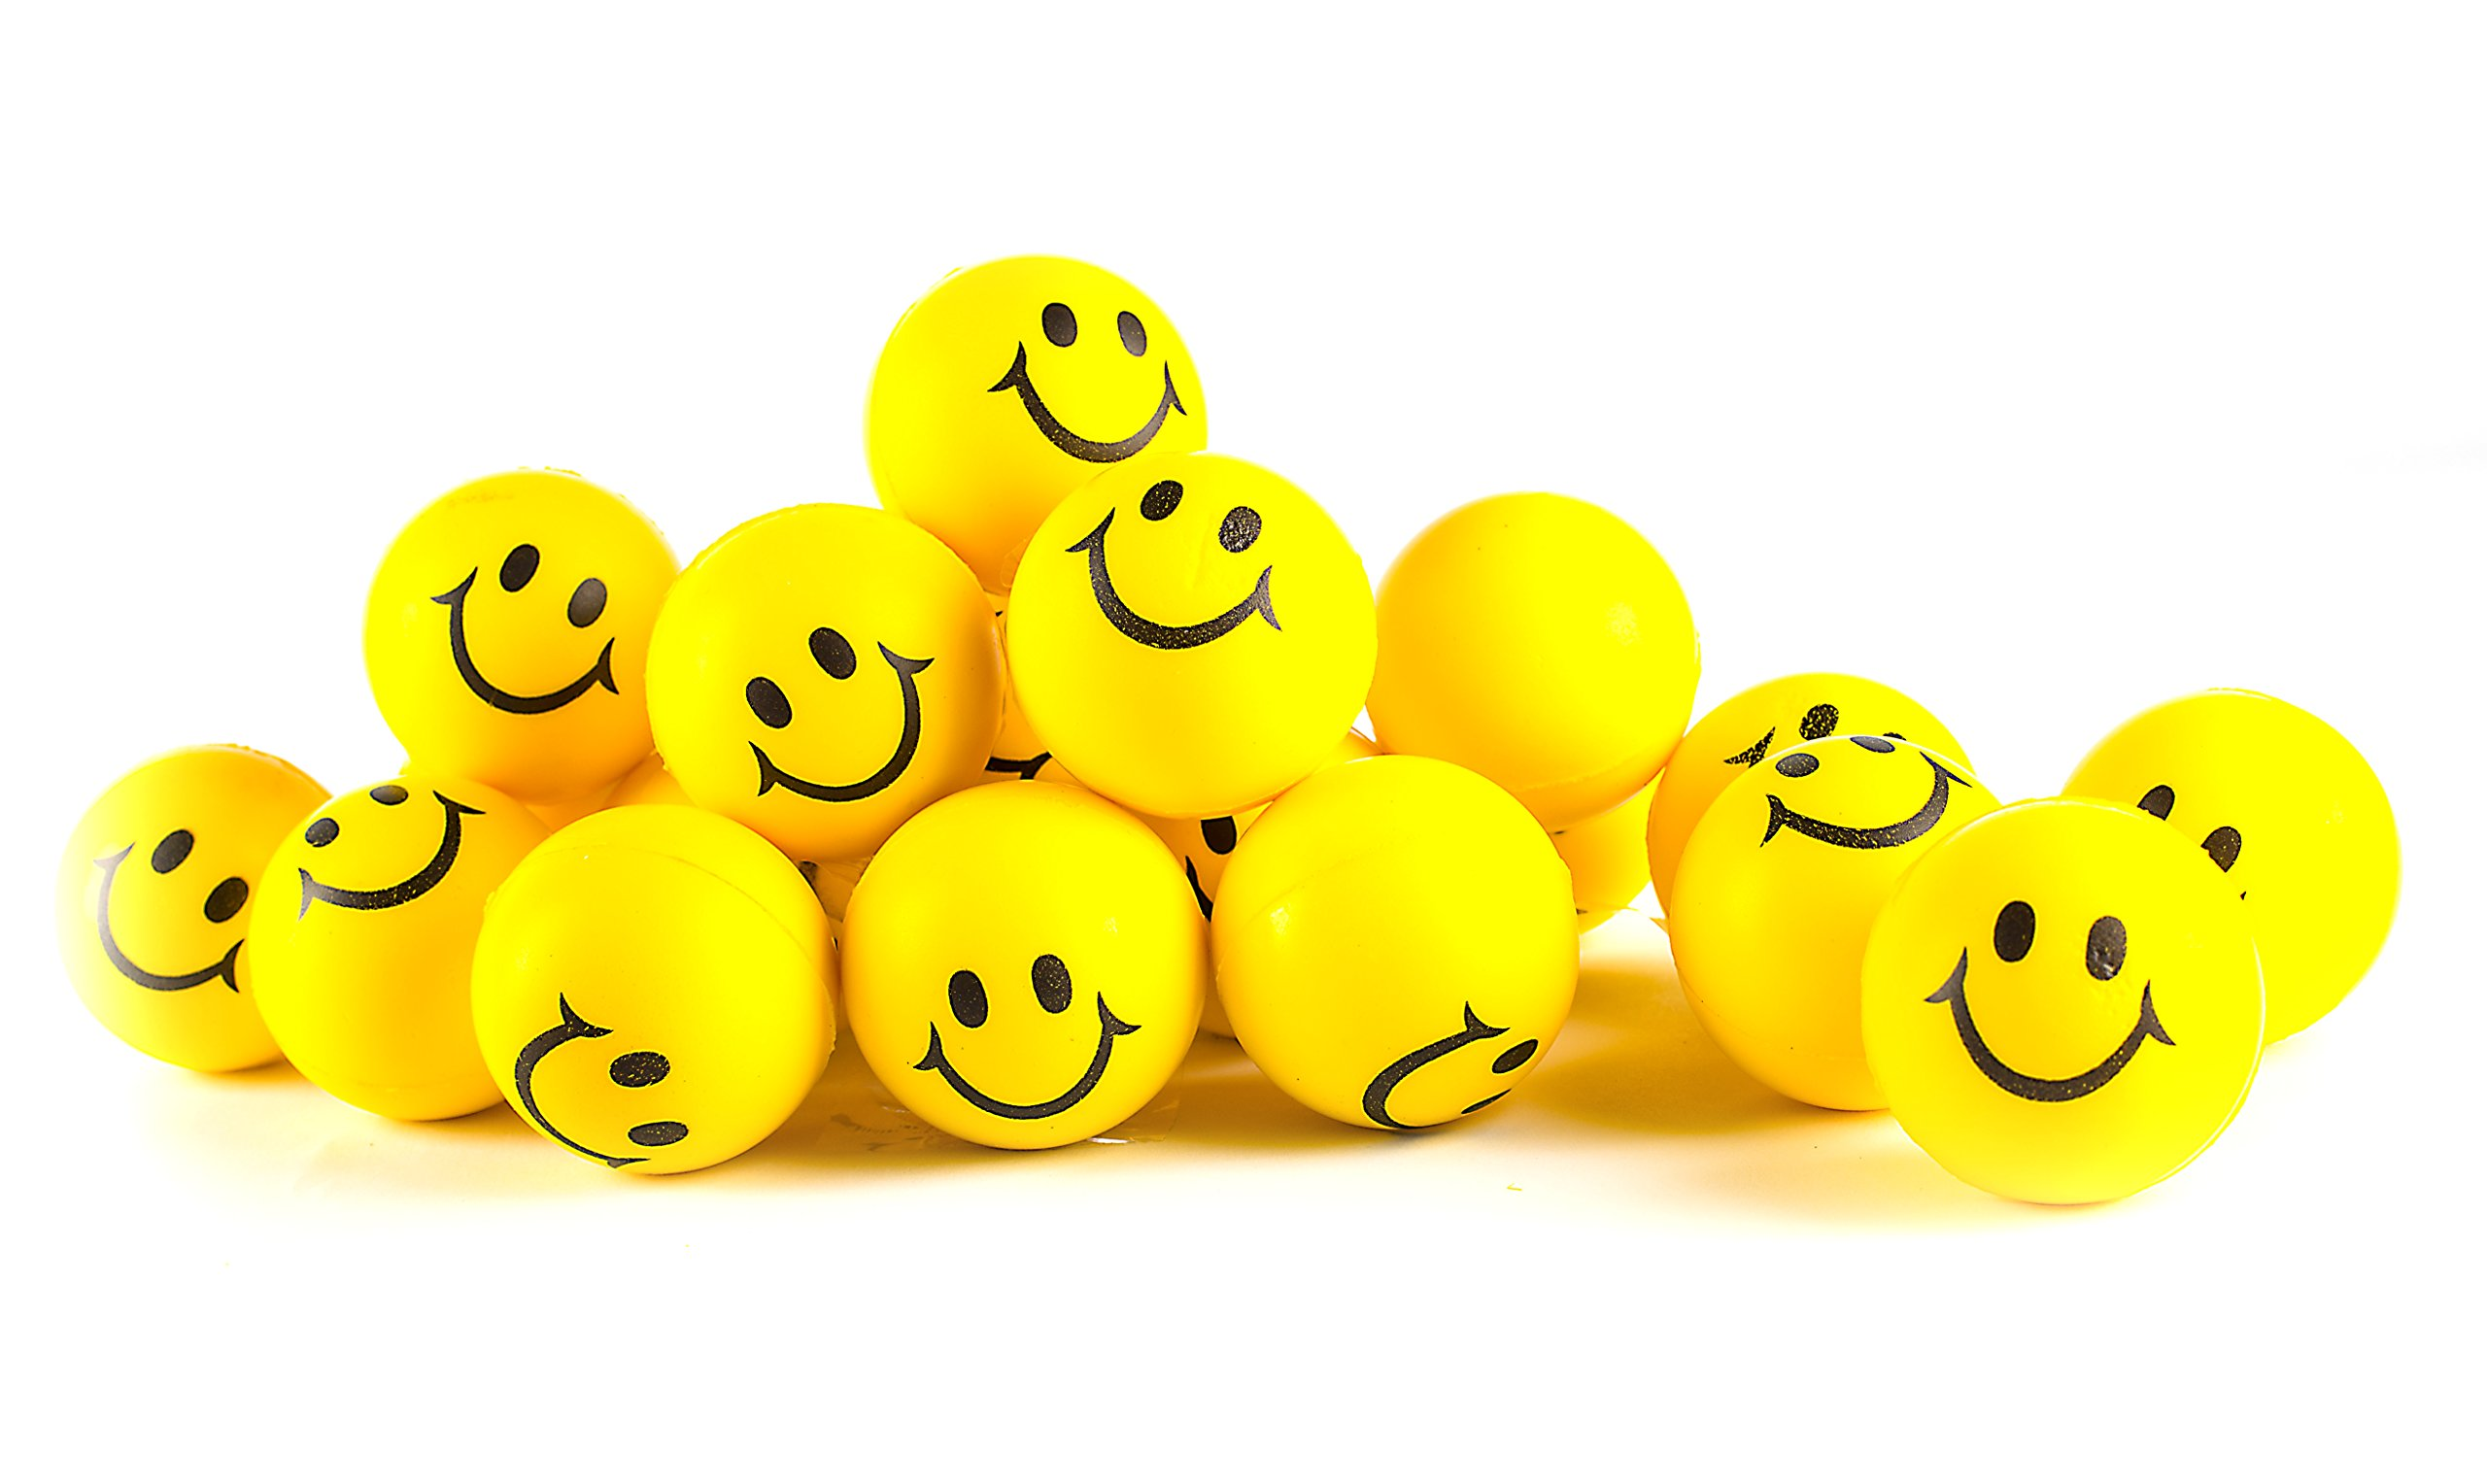 Neliblu Why Worry? Be Happy! Neon Yellow Smile Funny Face Stress Balls - Happy Smiley Face Stress Balls Bulk Pack of 24 2'' Stress Relief Smile Squeeze Balls - Christmas Stocking Stuffers - Fun Toys